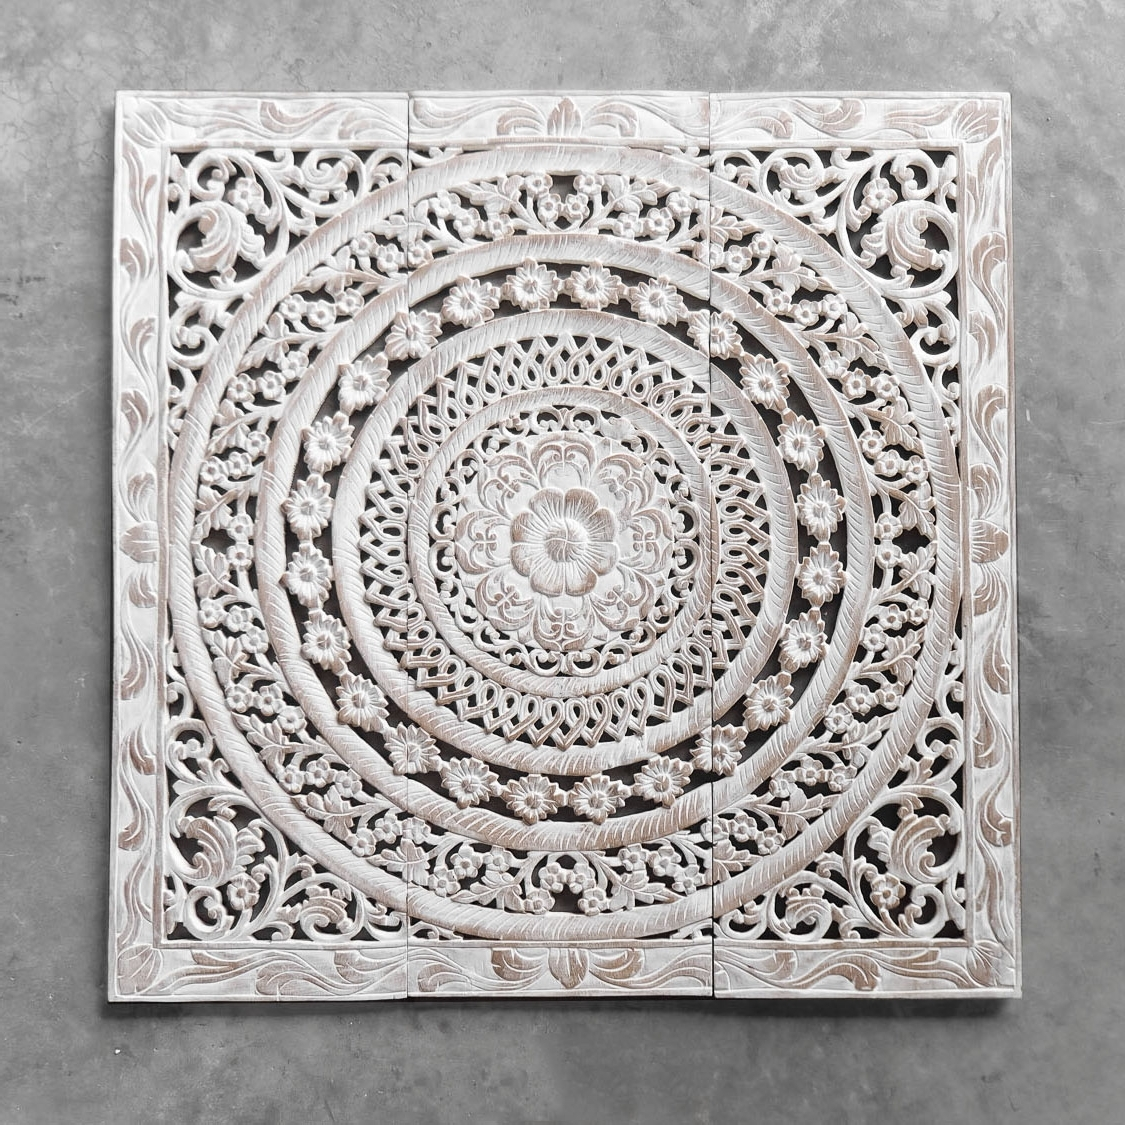 Moroccan Decent Wood Carving Wall Art Hanging – Siam Sawadee In Recent Moroccan Metal Wall Art (View 5 of 15)